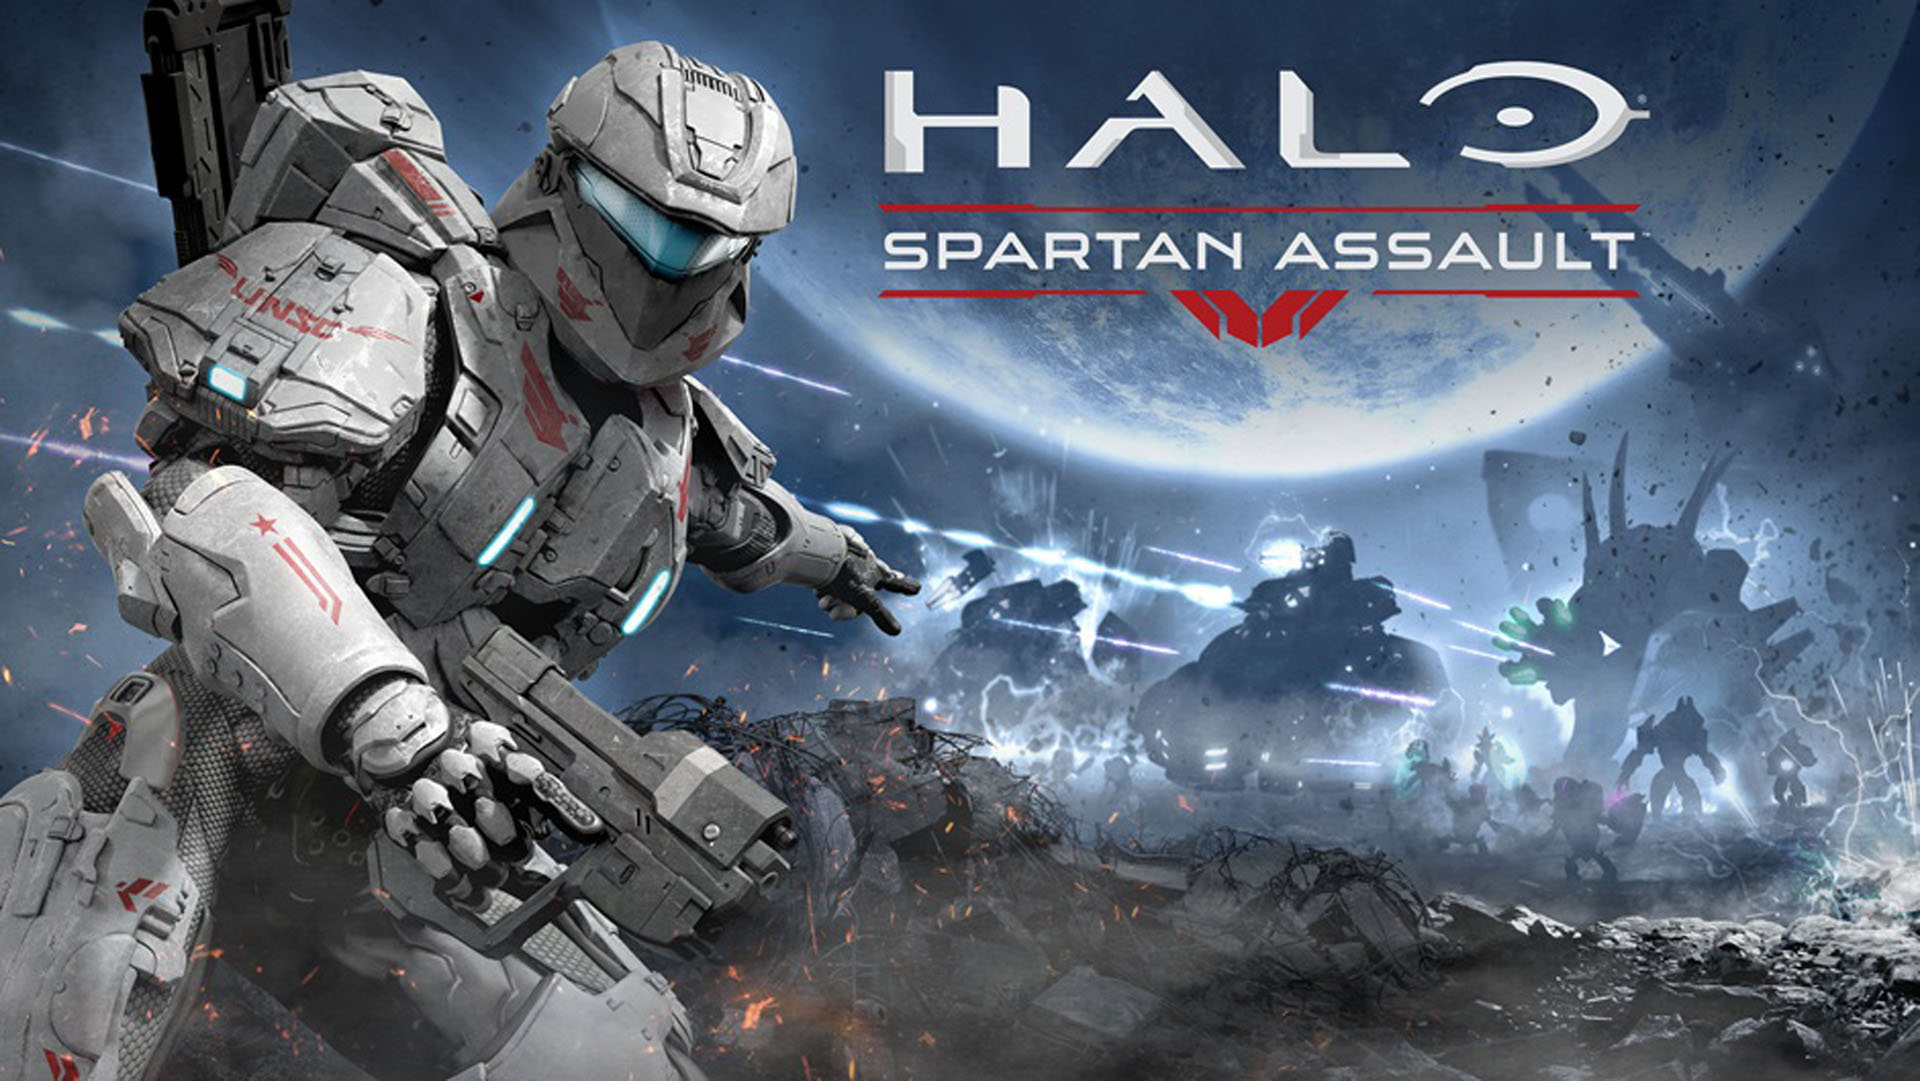 Xbox One - Halo: Spartan Assault Launches